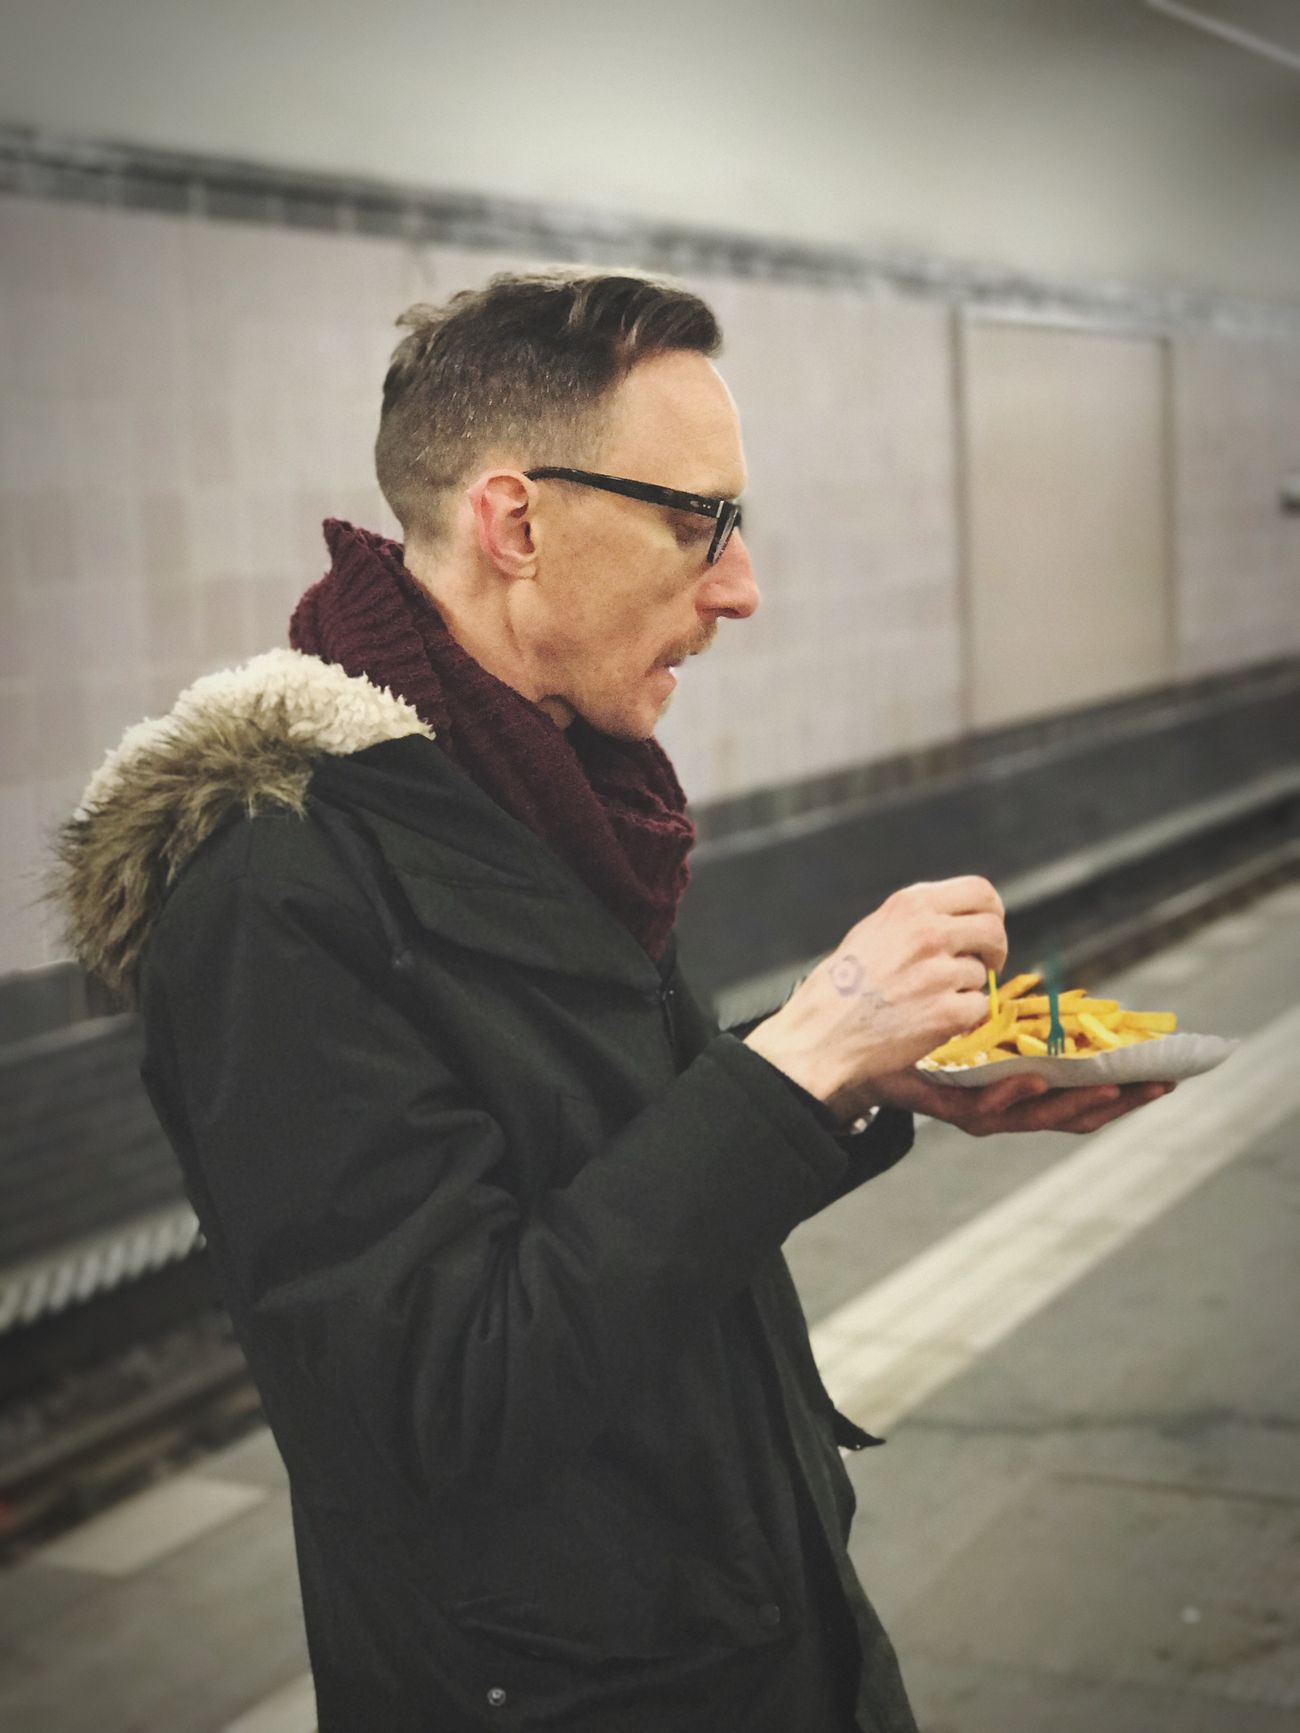 EyeEm Selects Post Tresor fries Food Food And Drink Real People One Person Freshness Vegetable Holding Lifestyles Focus On Foreground Healthy Eating Eating Indoors  Eyeglasses  Day Young Adult People Man Cool Hamburger Schule Berlin S-bahn S-Bahn Berlin